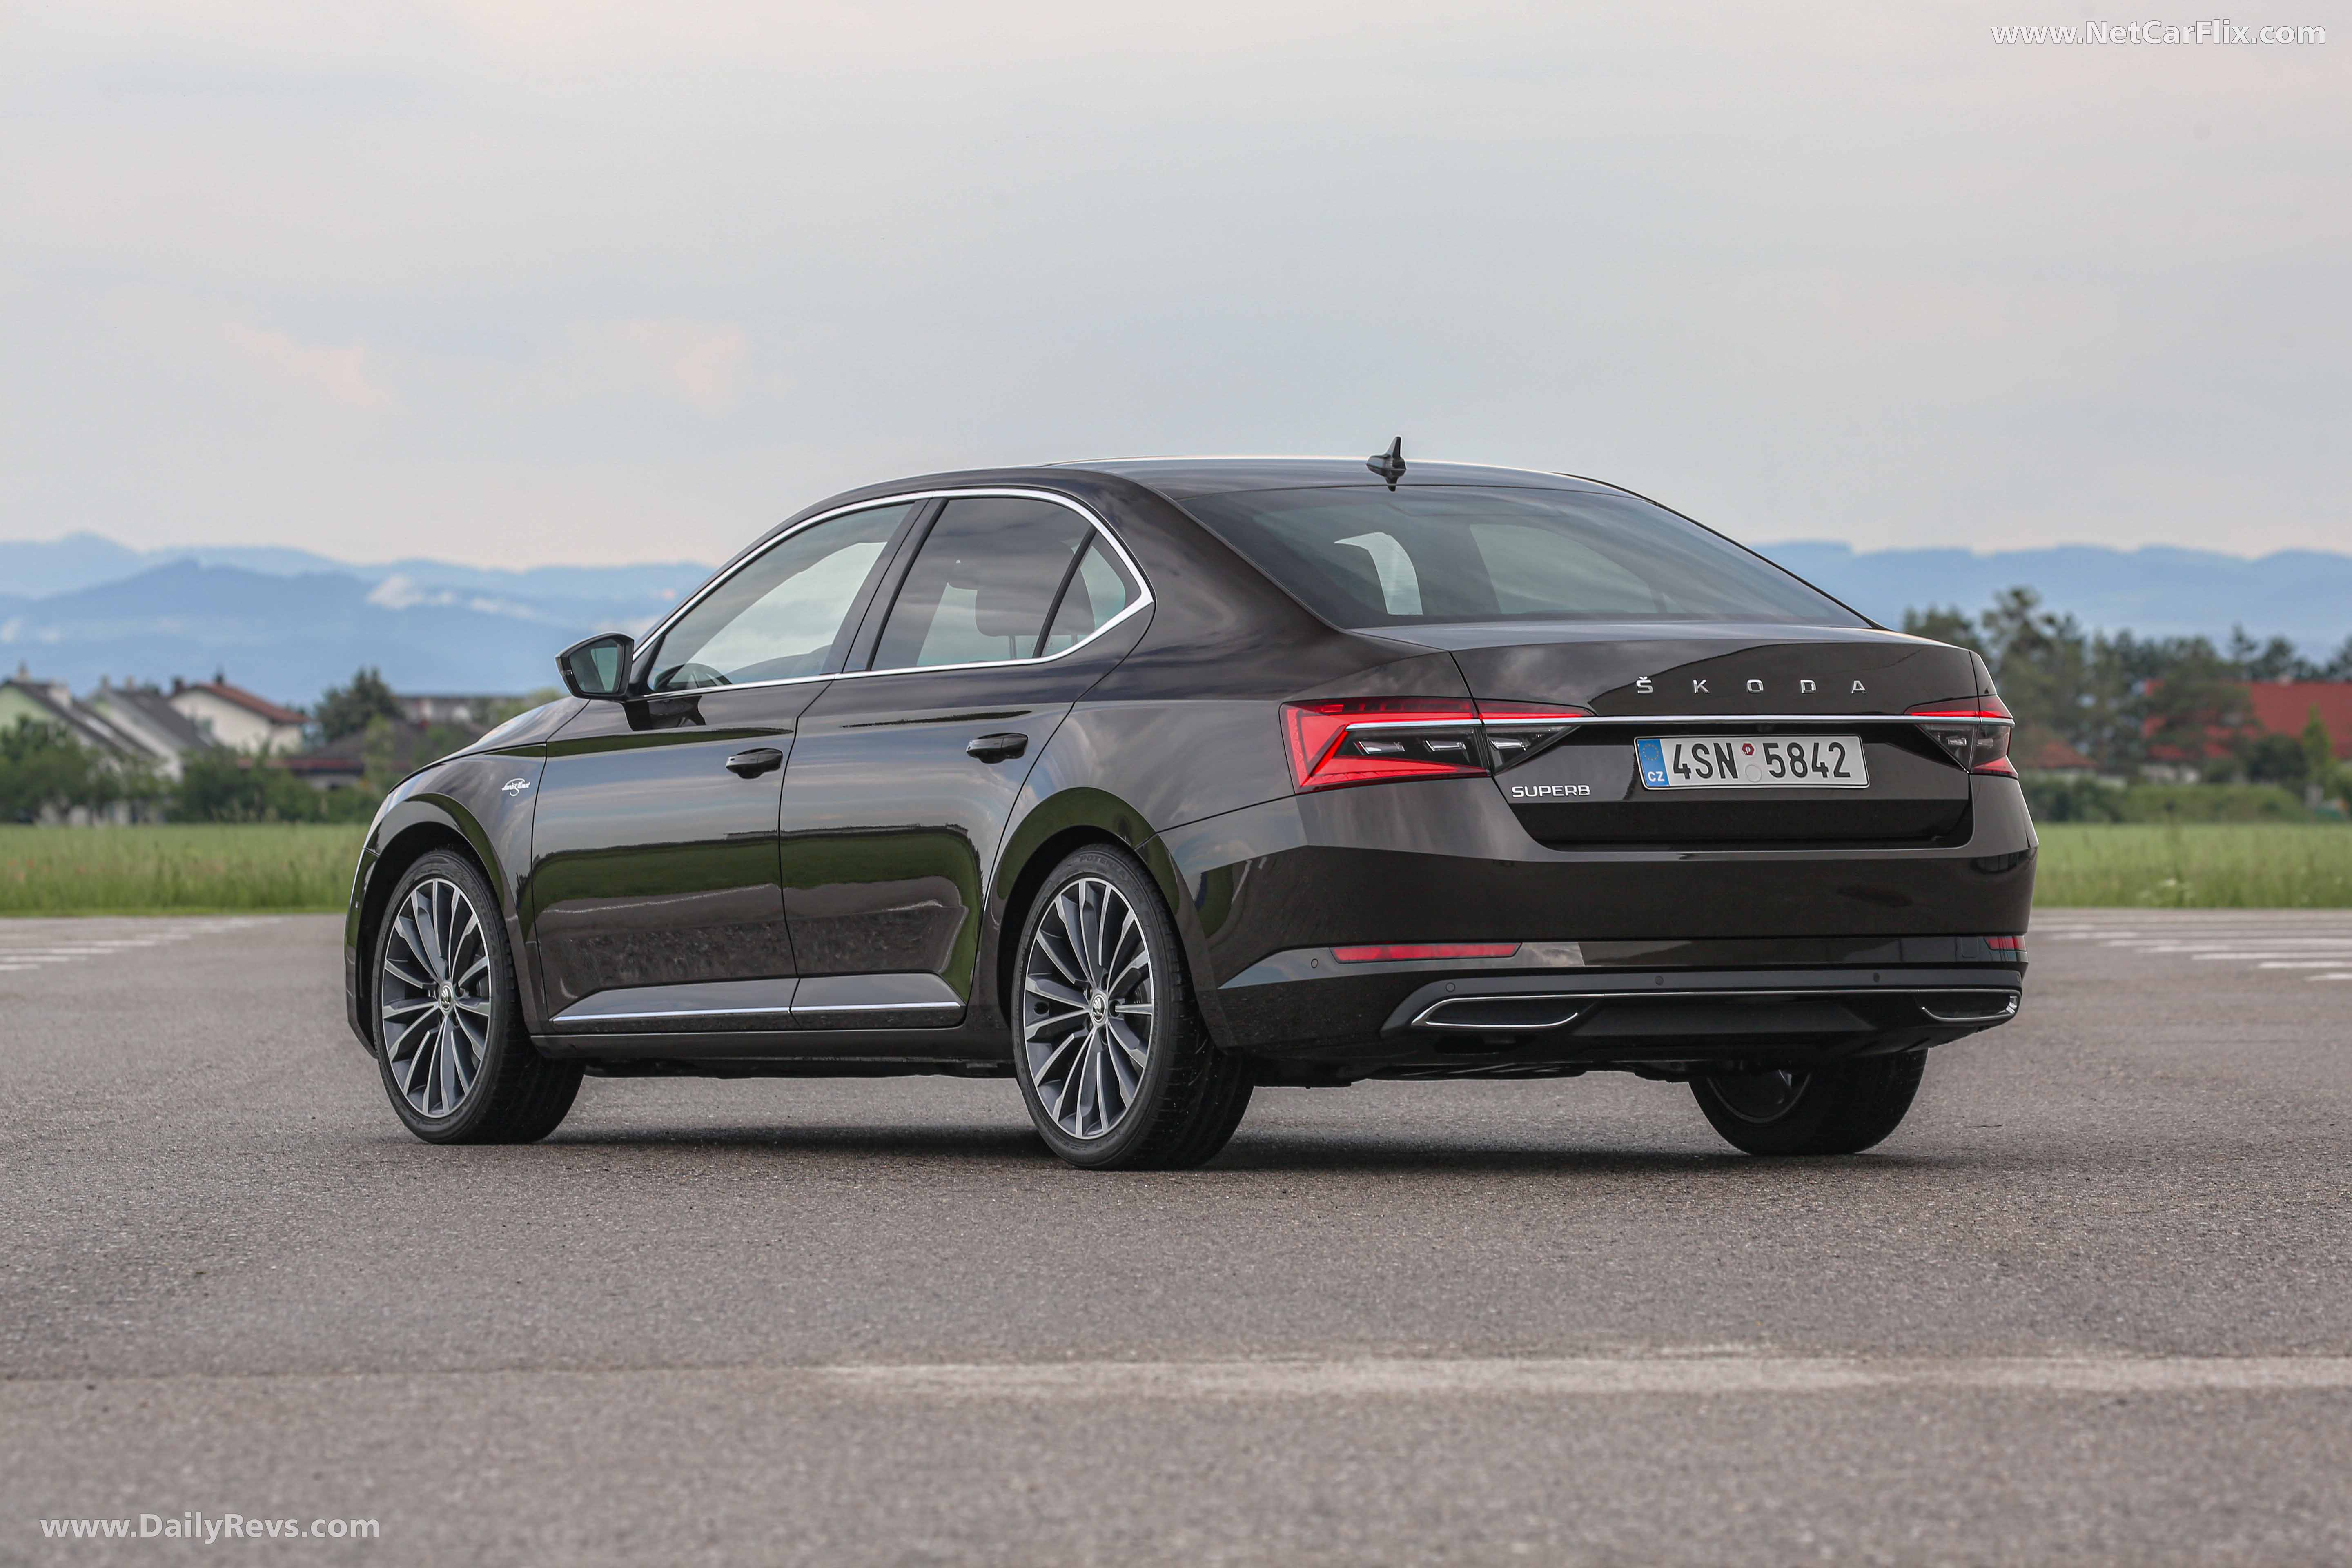 2020 Skoda Superb - HD Pictures, Videos, Specs ...